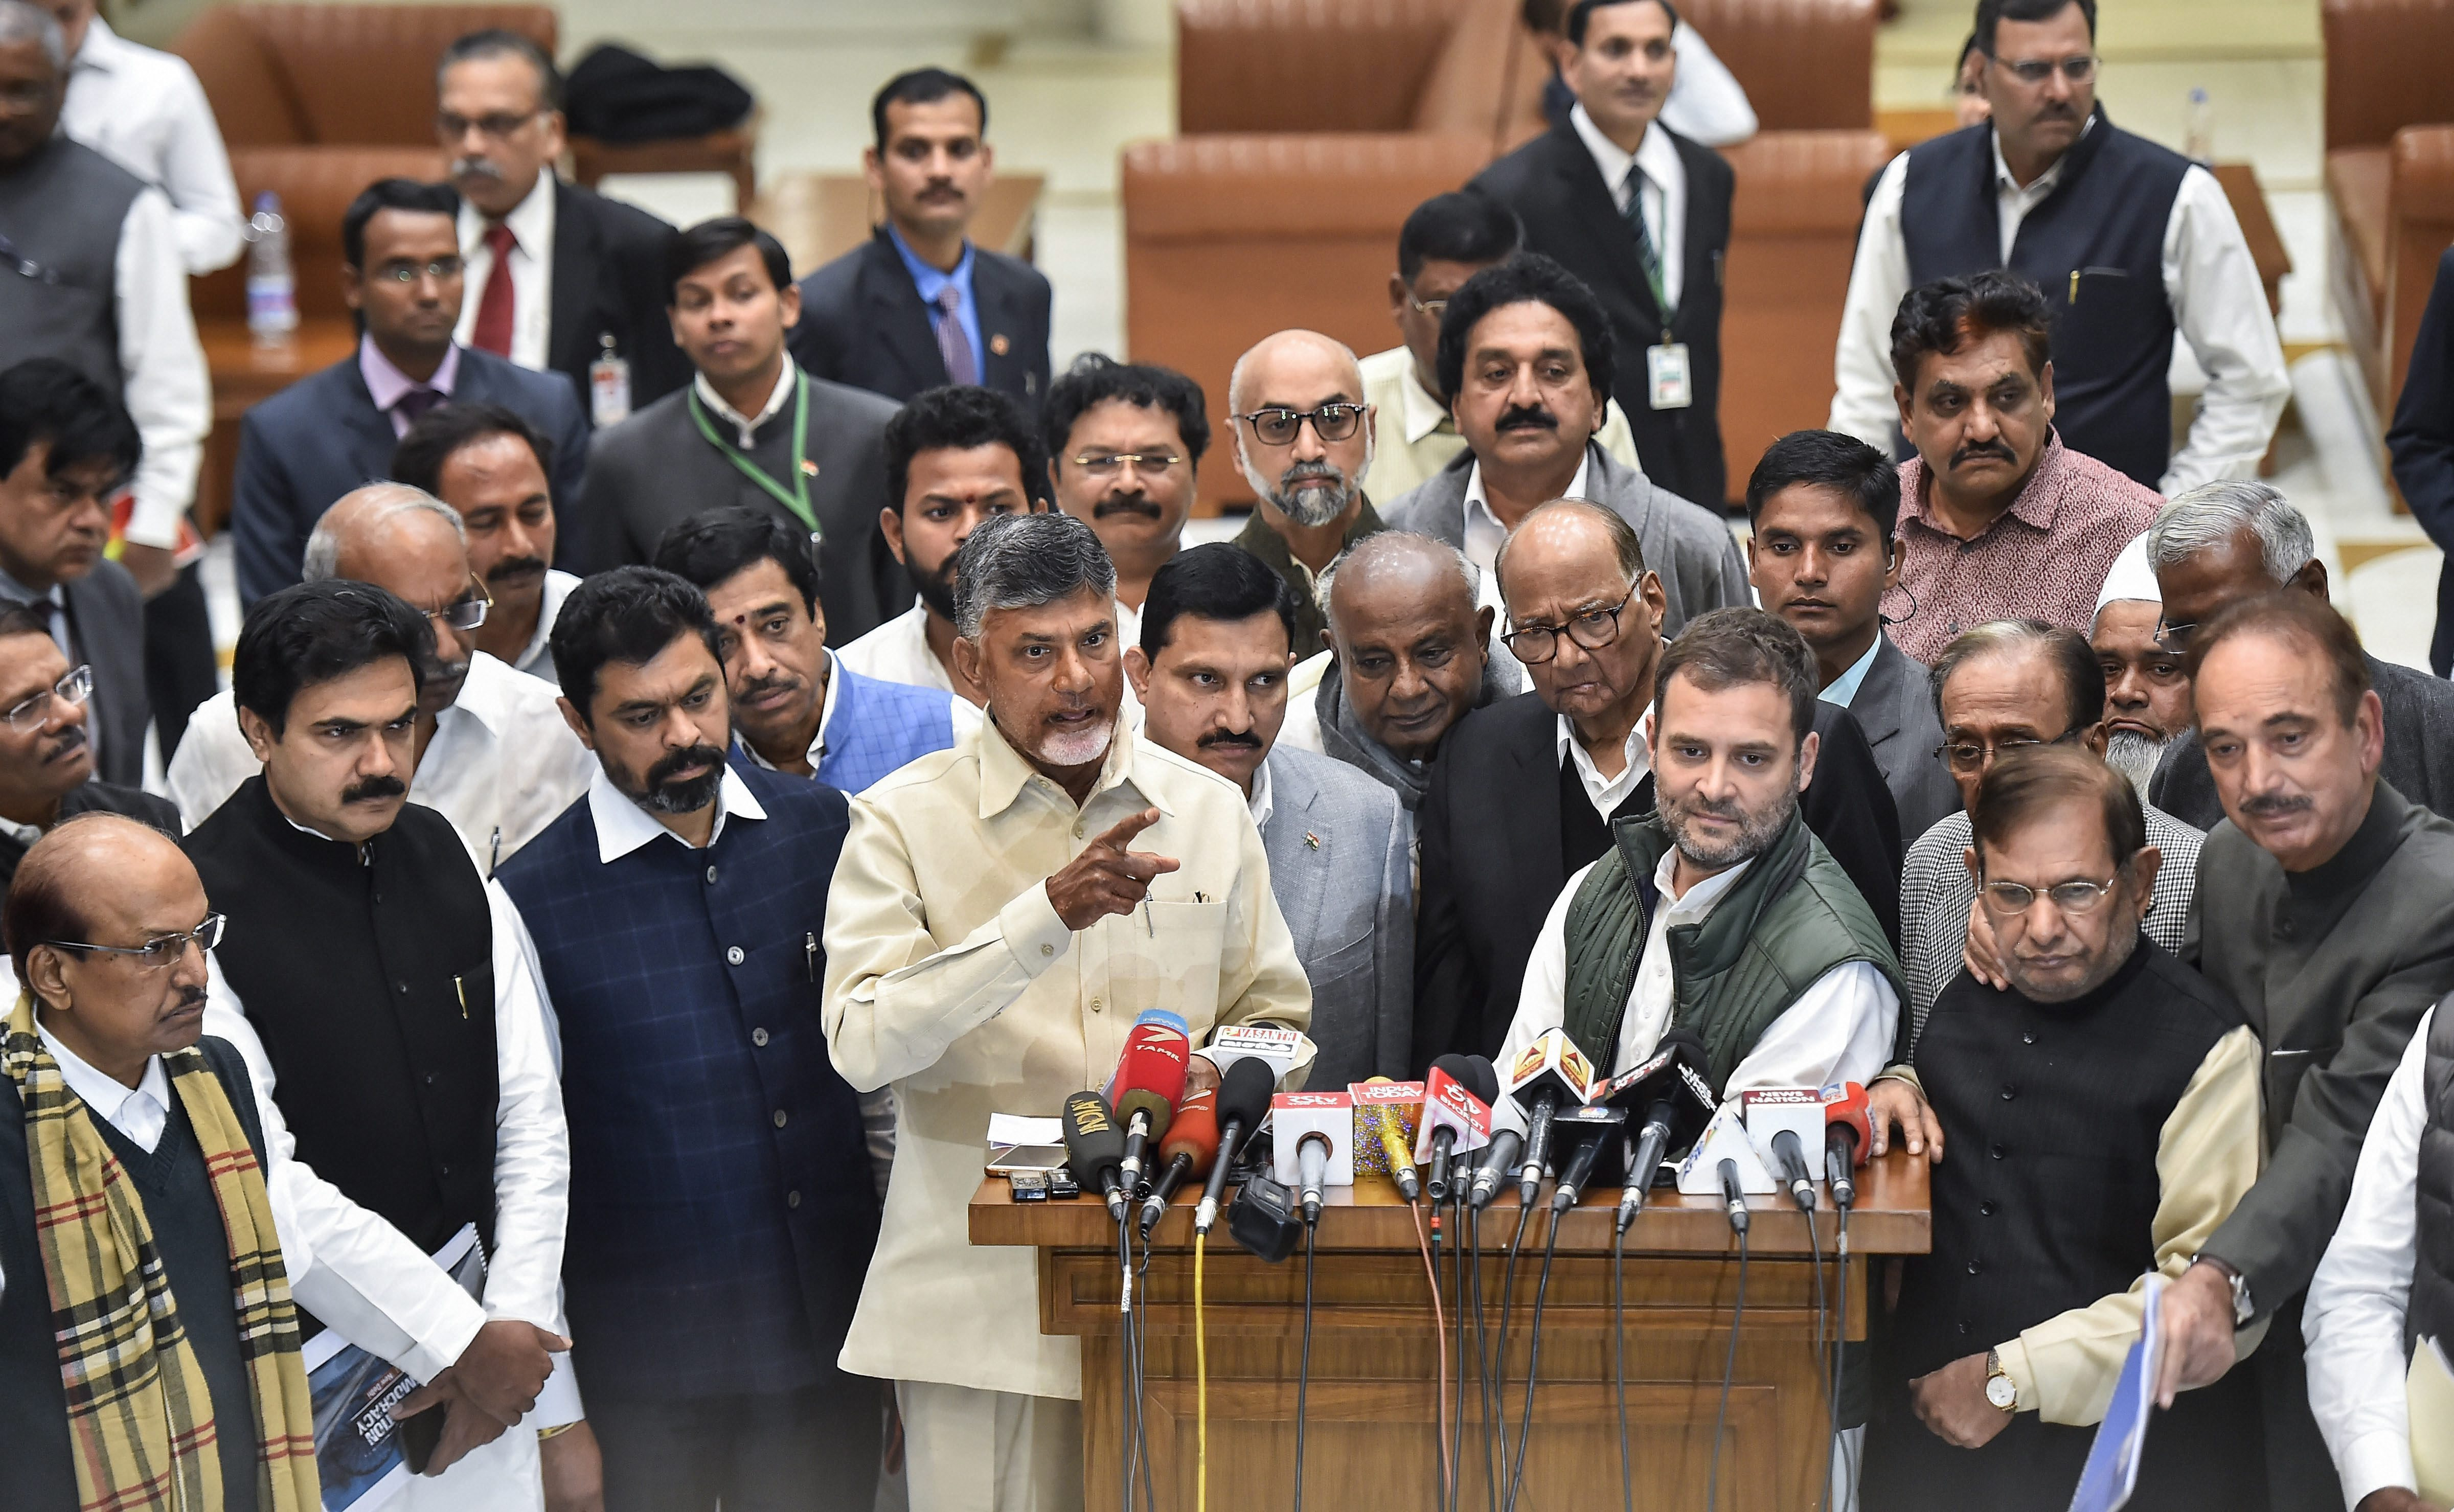 Leaders at a press conference after the Opposition meeting in New Delhi on Monday.